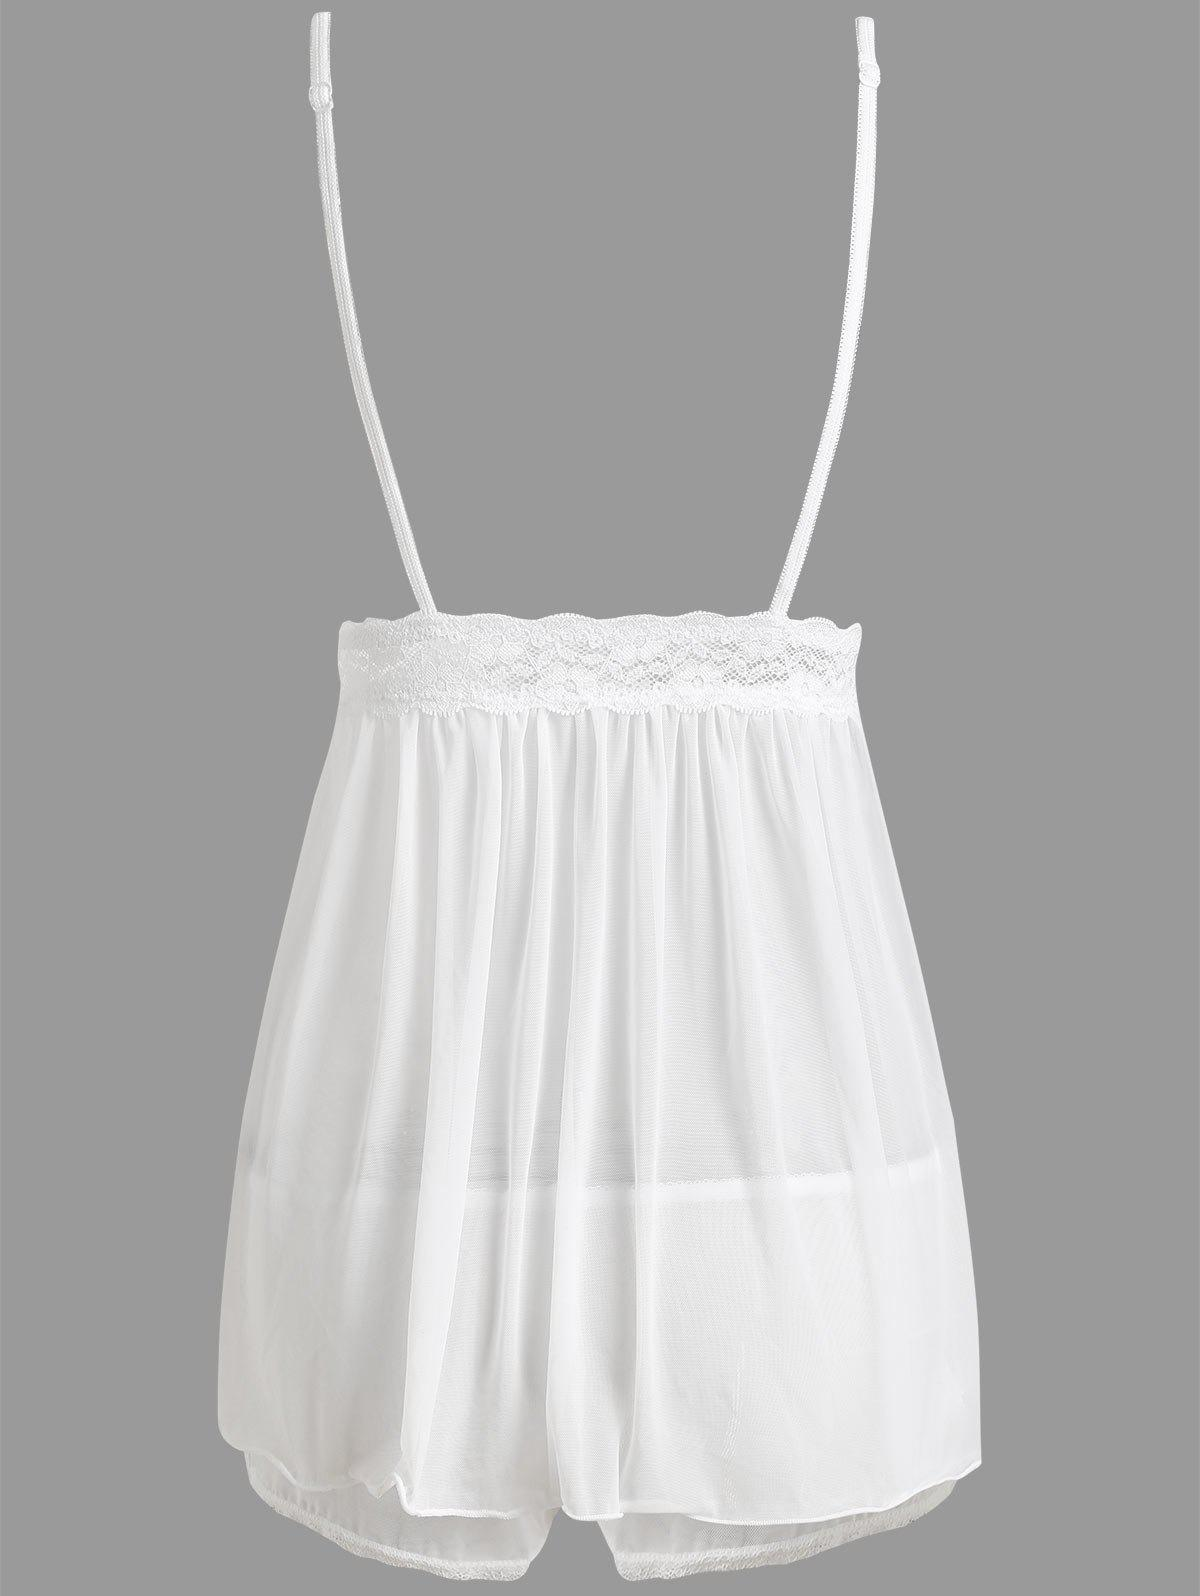 Sheer Mesh Slip Babydoll with Lace - WHITE M